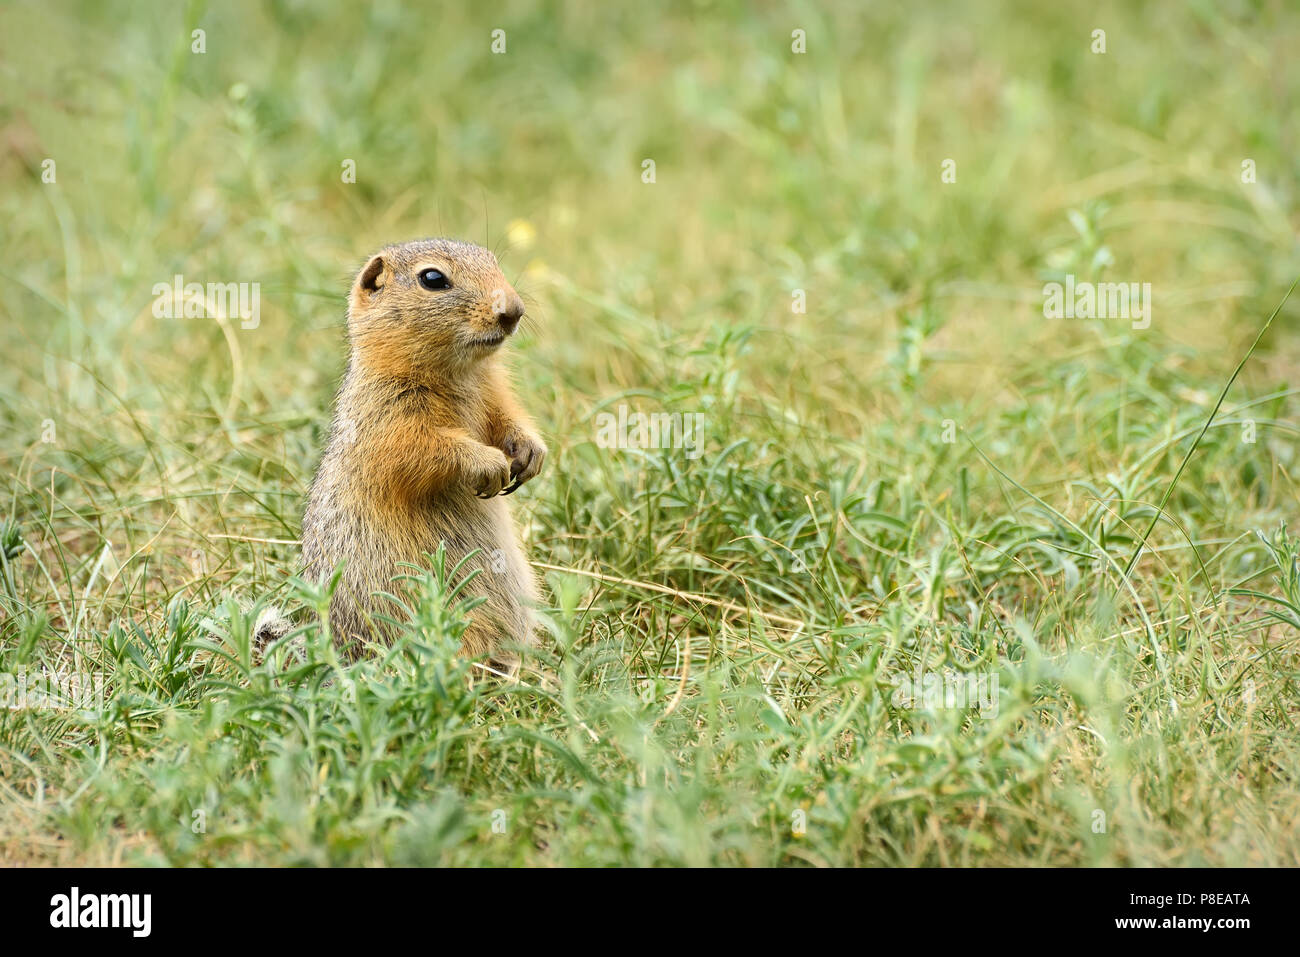 Gopher Rodent Stock Photos & Gopher Rodent Stock Images - Alamy